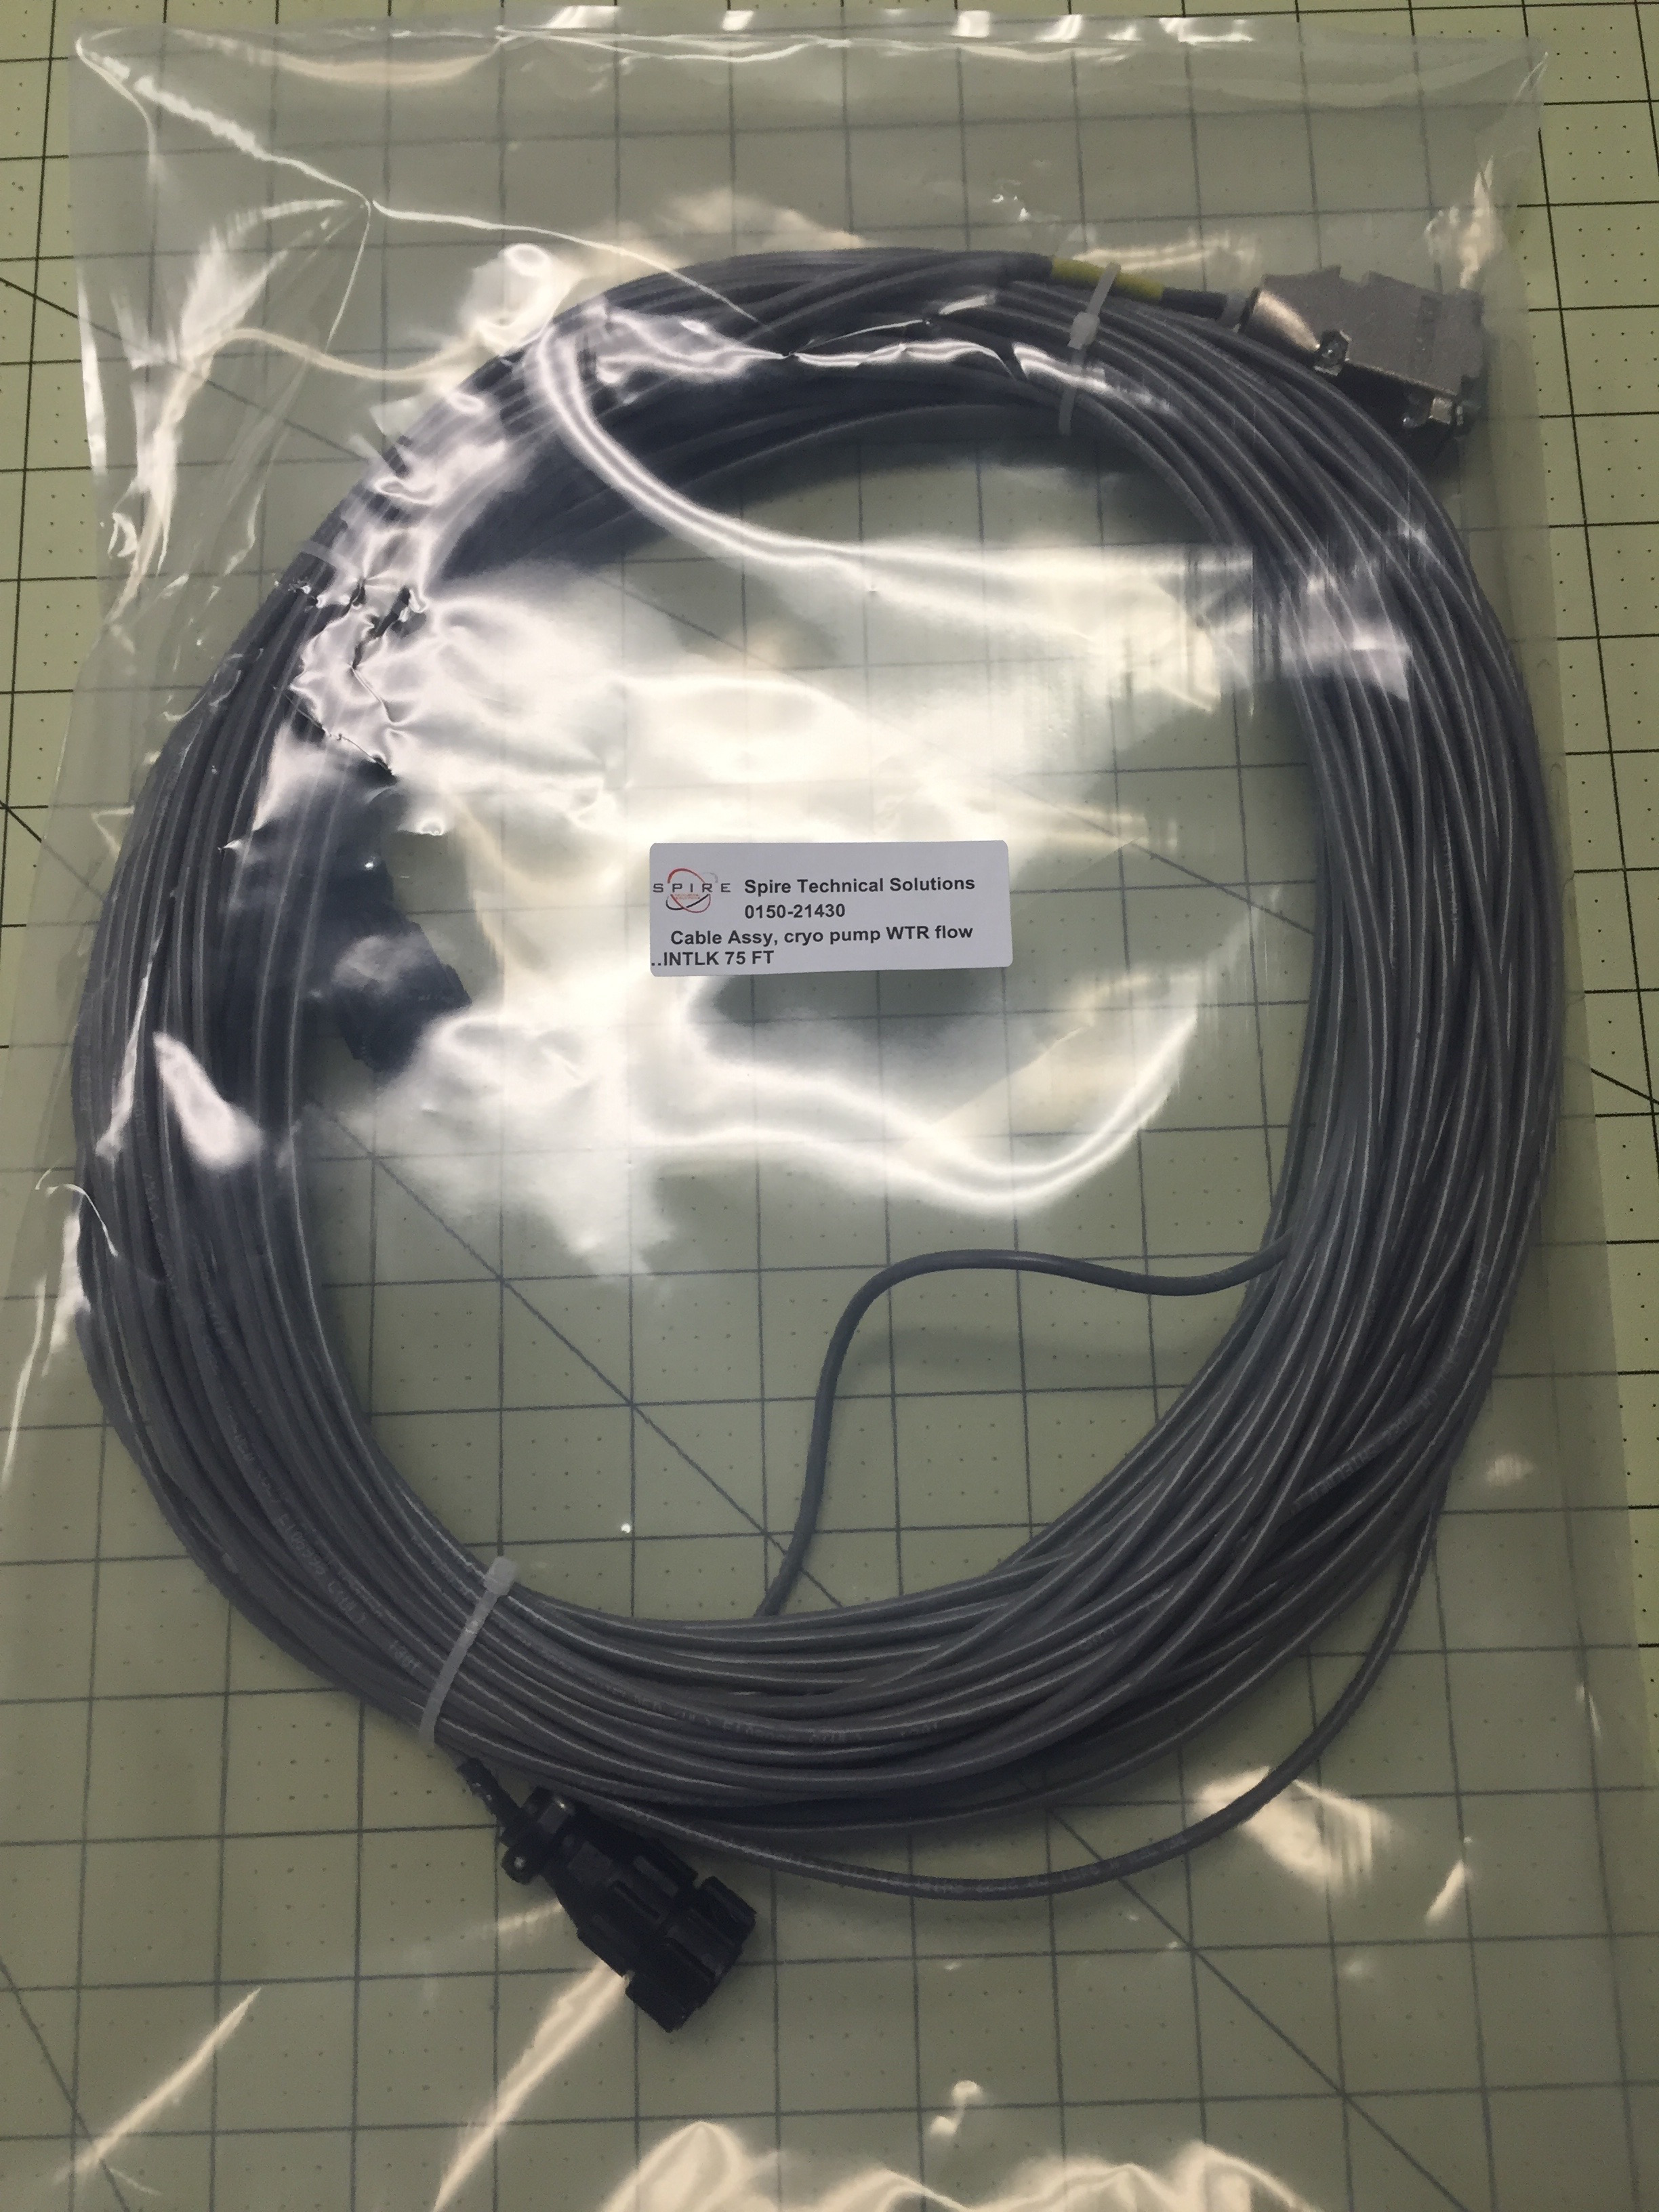 Cable Assy, cryo pump WTR flow